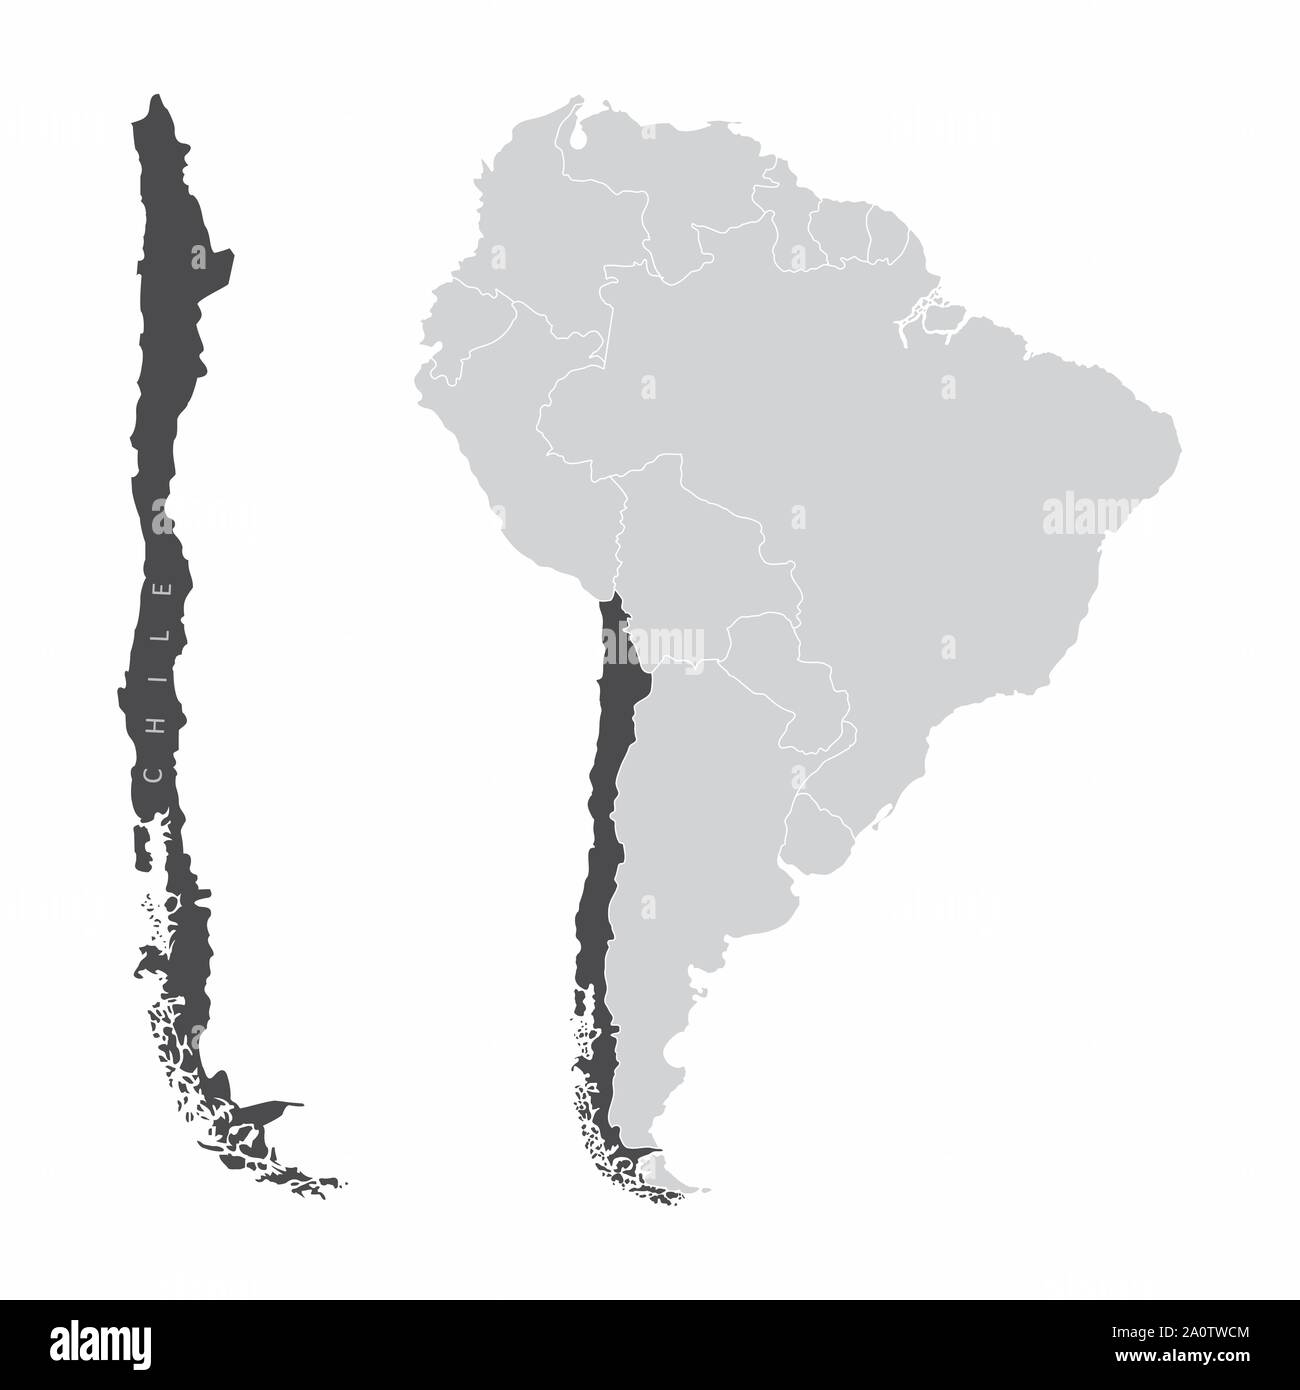 The Chile map and its location in South America Stock Vector